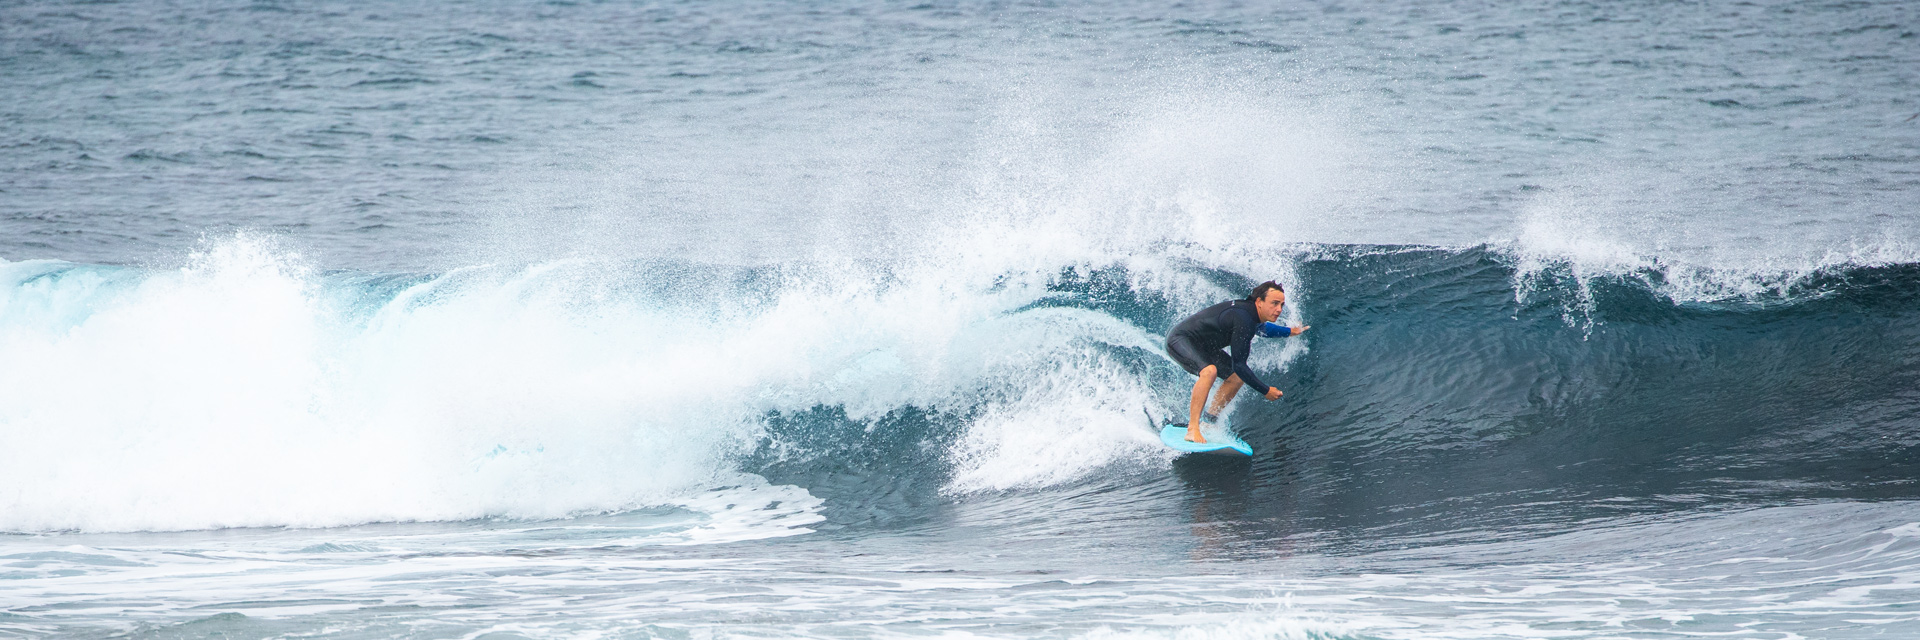 Man in black wetsuit riding an ocean wave. He is crouched on a light blue surfboard.